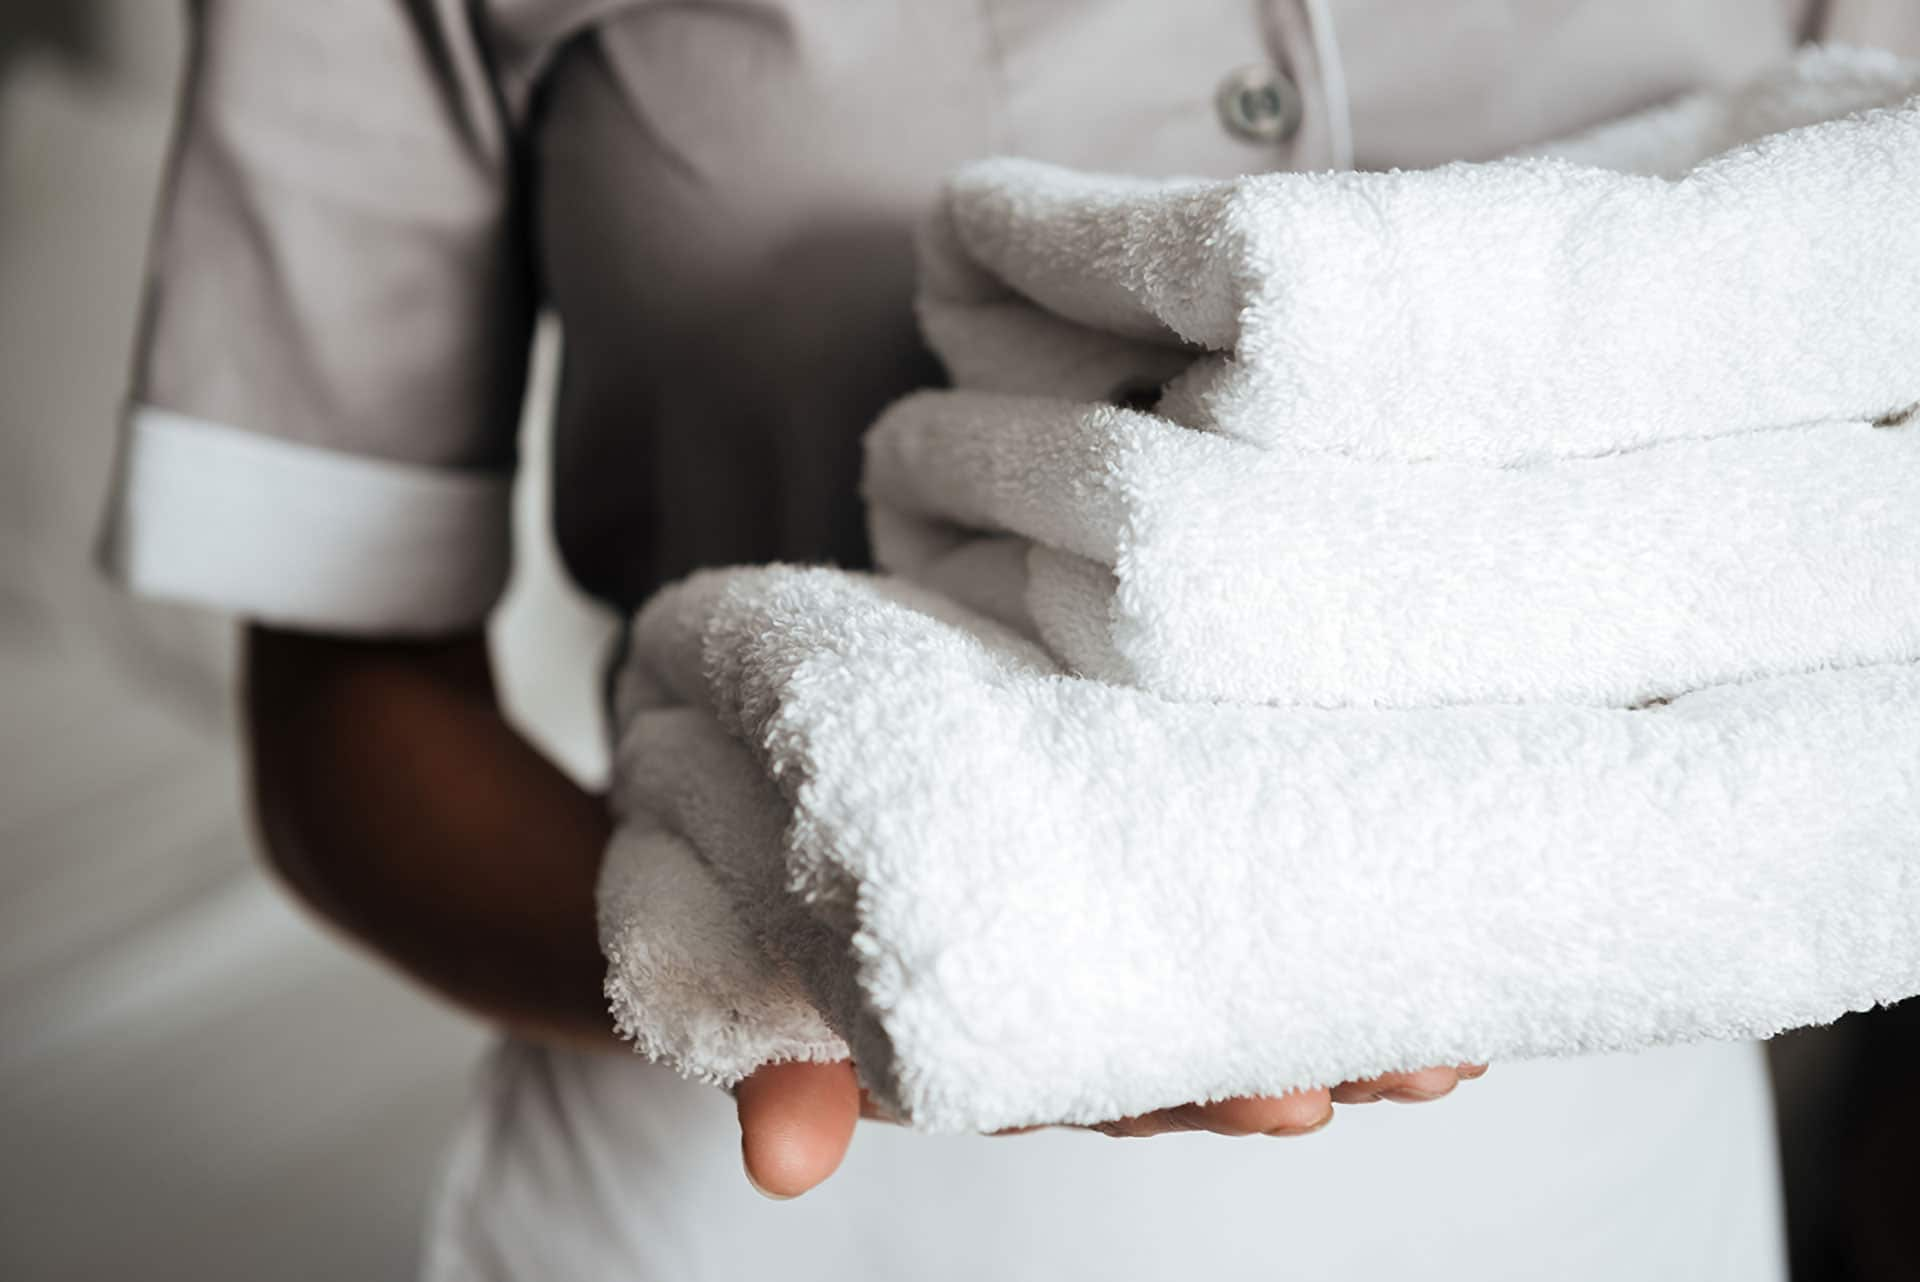 Fast friendly support for your hotel laundry system. We're the Hotel laundry and dishwashing repair specialists Just call us free on: 0800 652 5692.